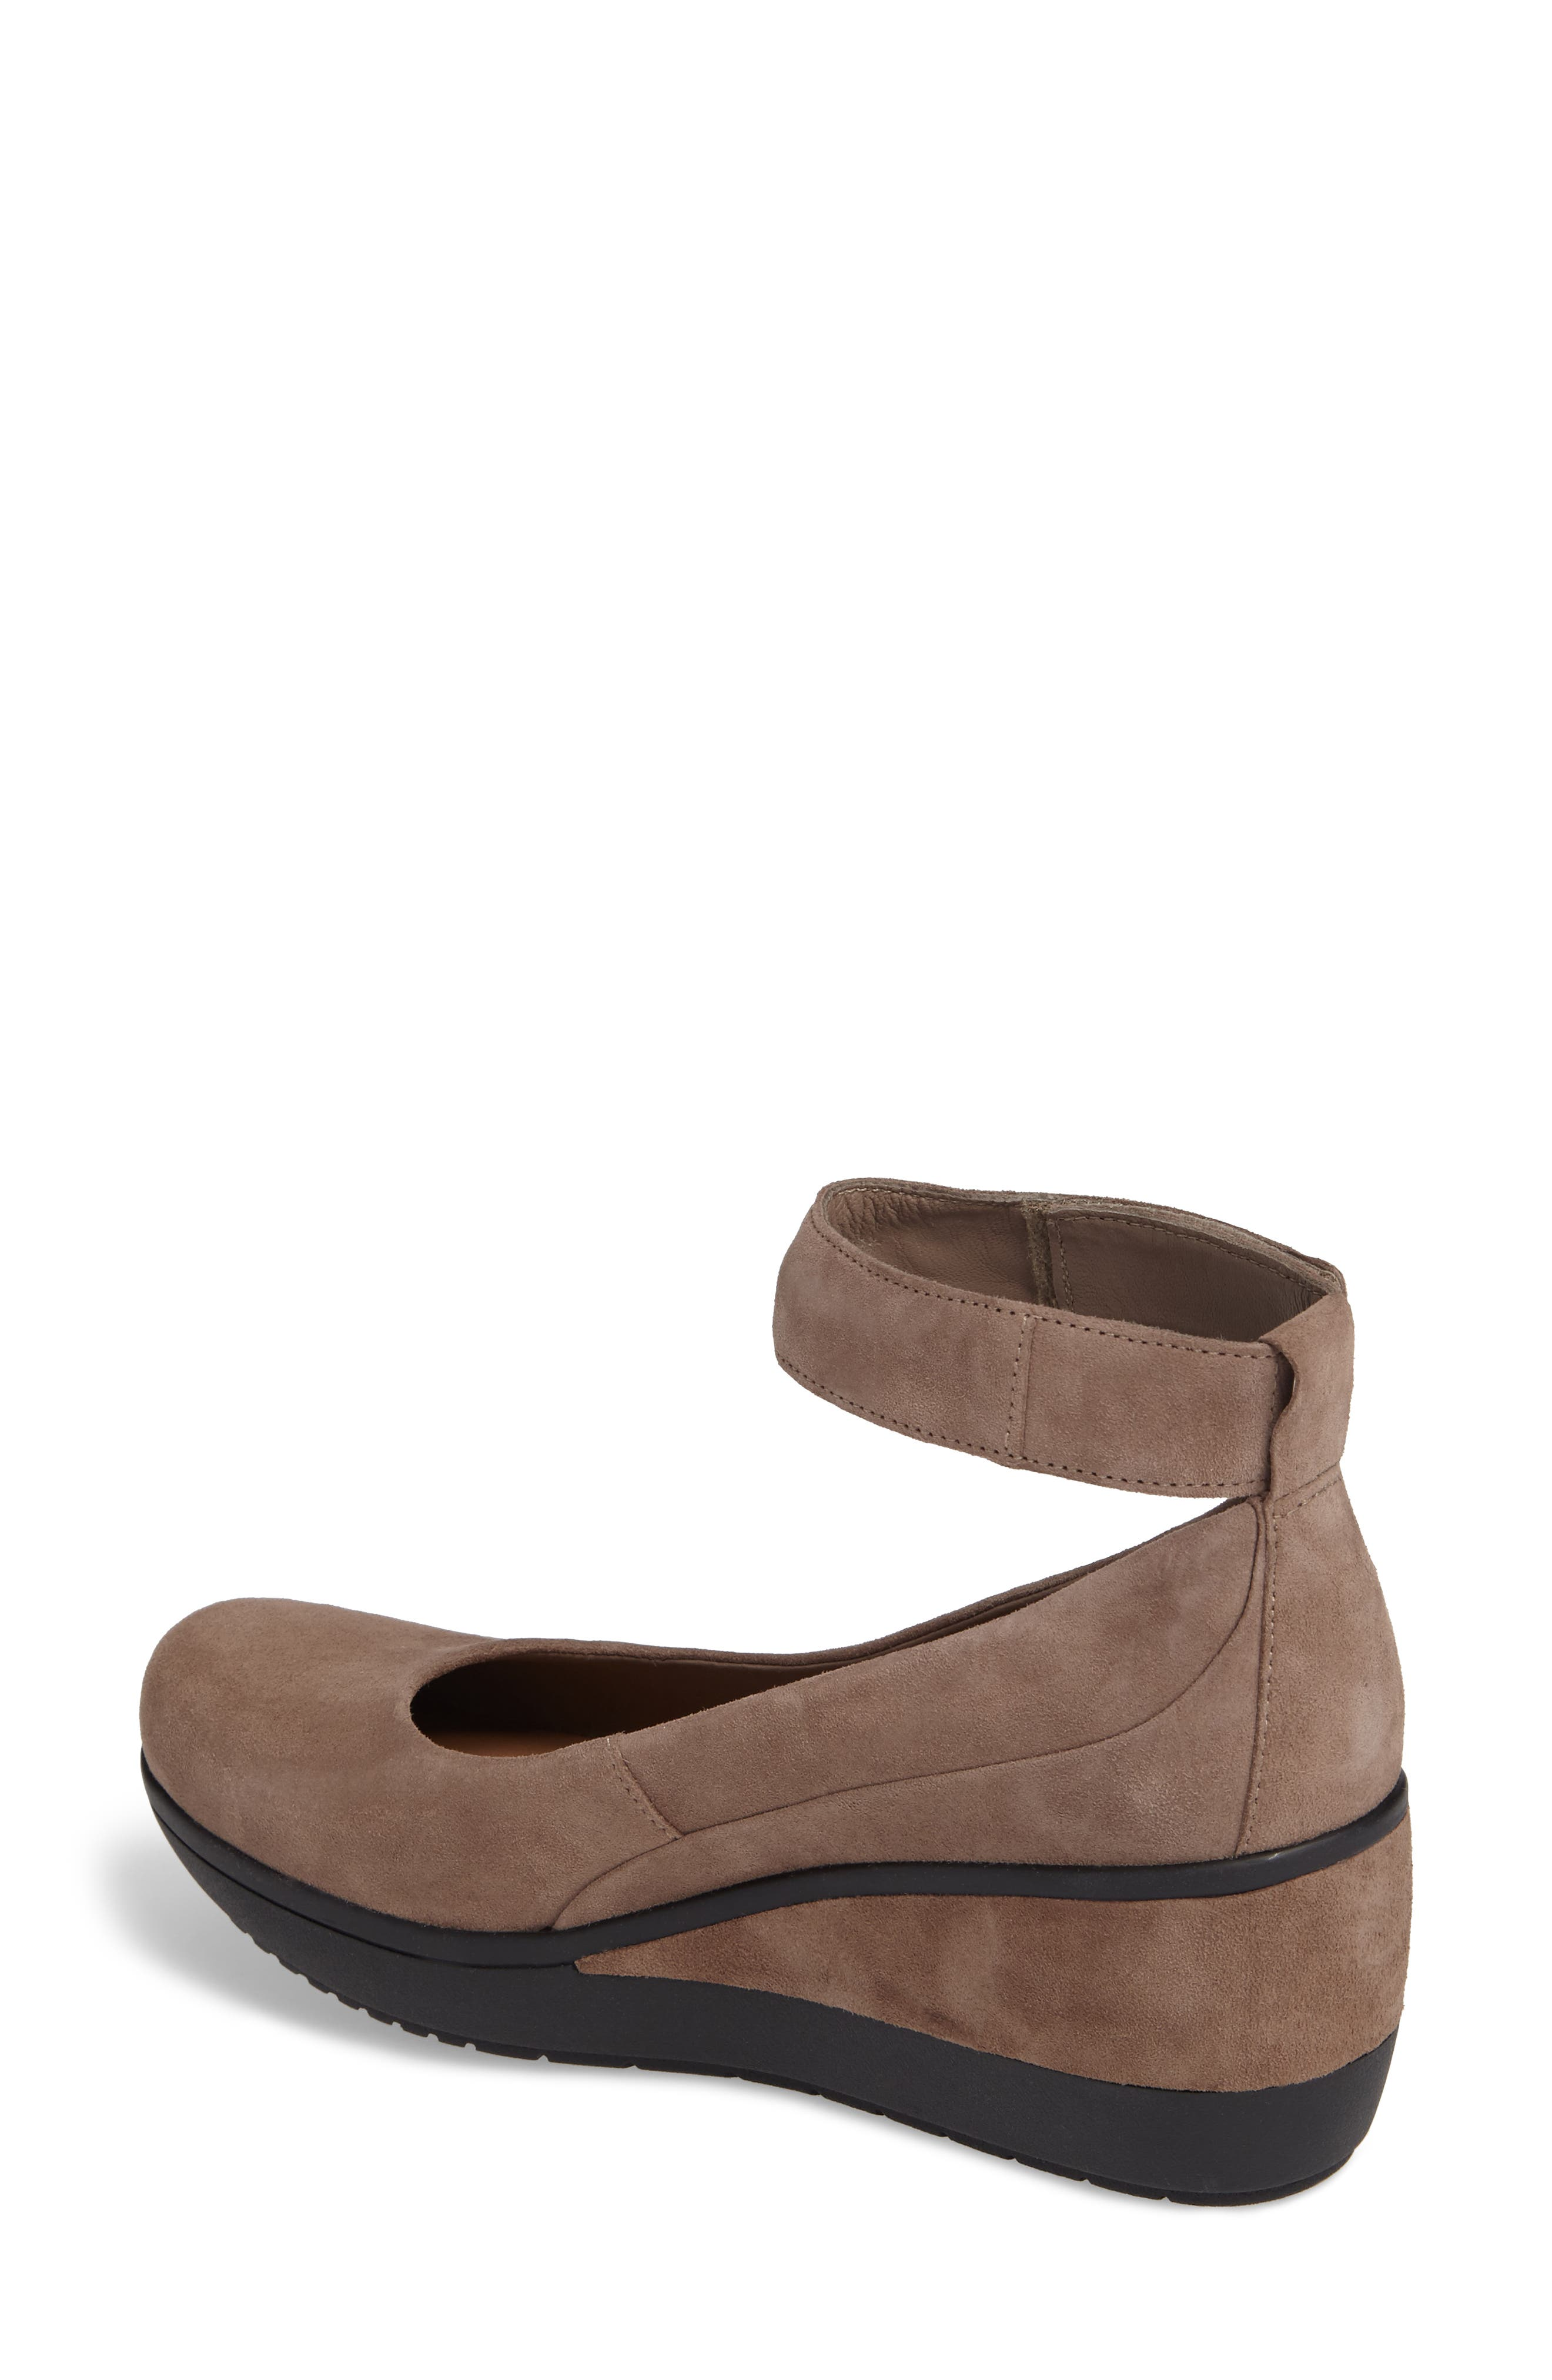 Wynnmere Fox Ankle Strap Pump,                             Alternate thumbnail 2, color,                             Pebble Suede